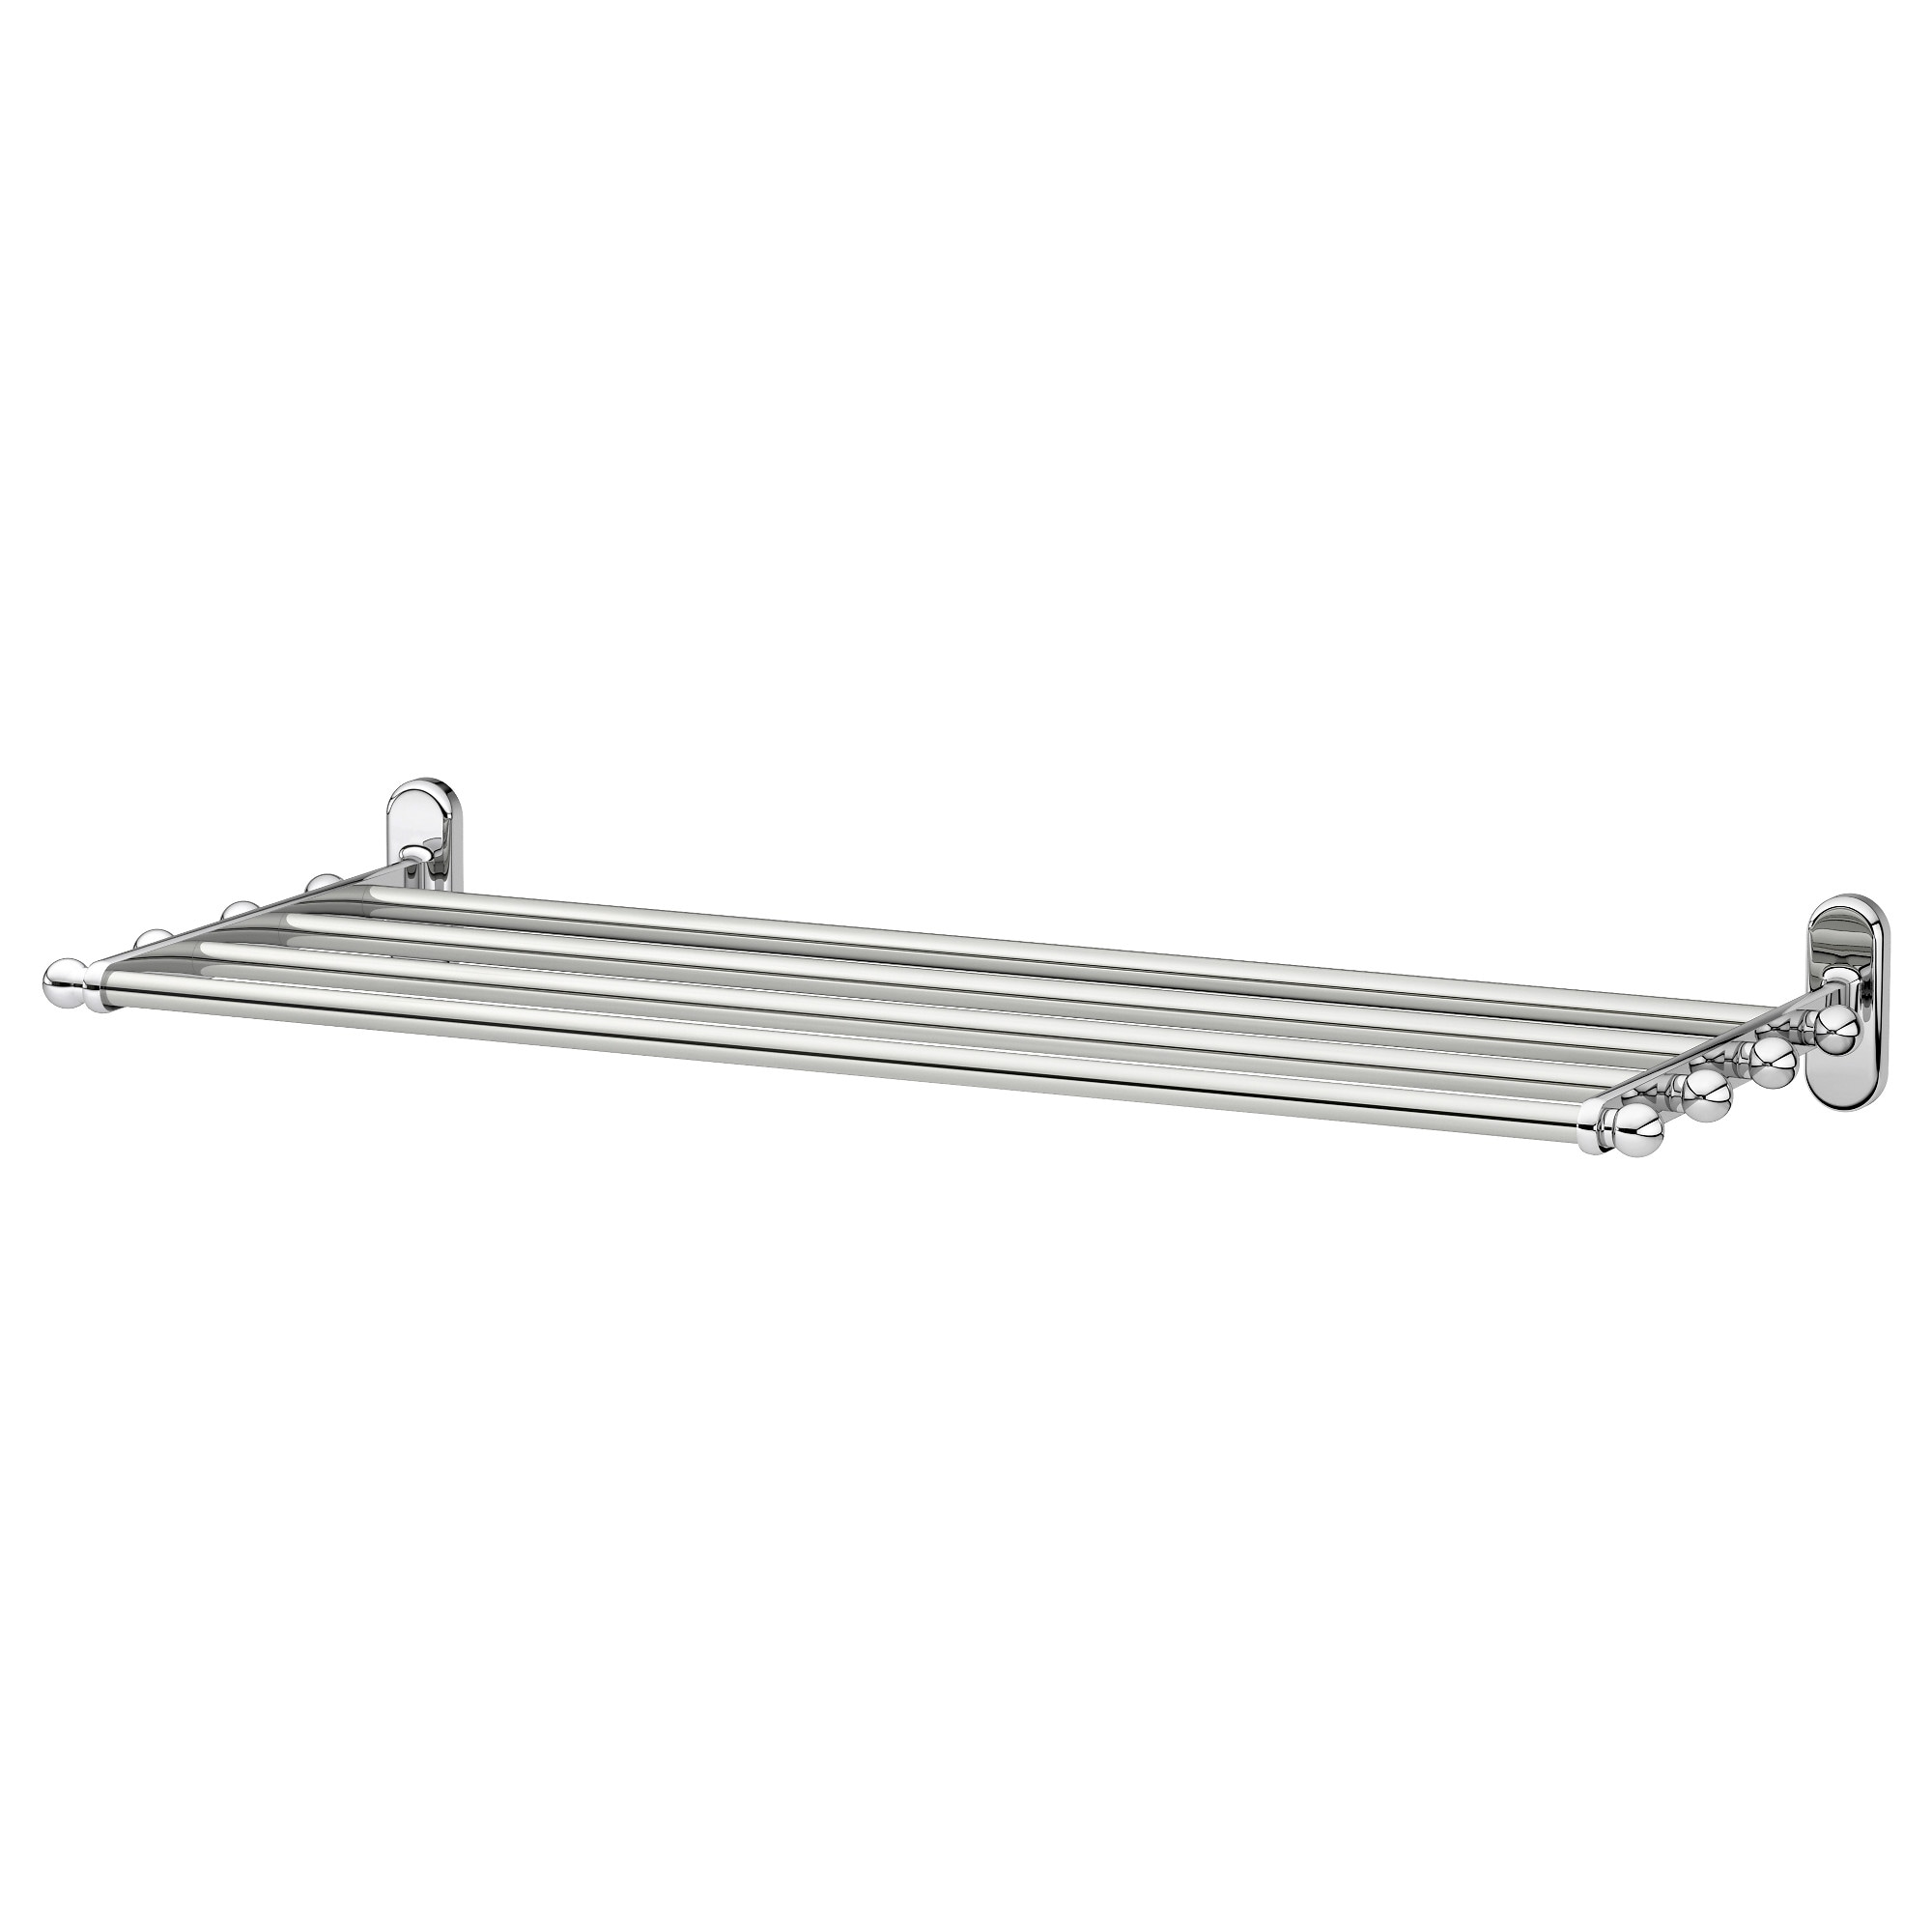 voxnan wall shelf with towel rail chrome effect width 26 58 - Bathroom Accessories Towel Rail